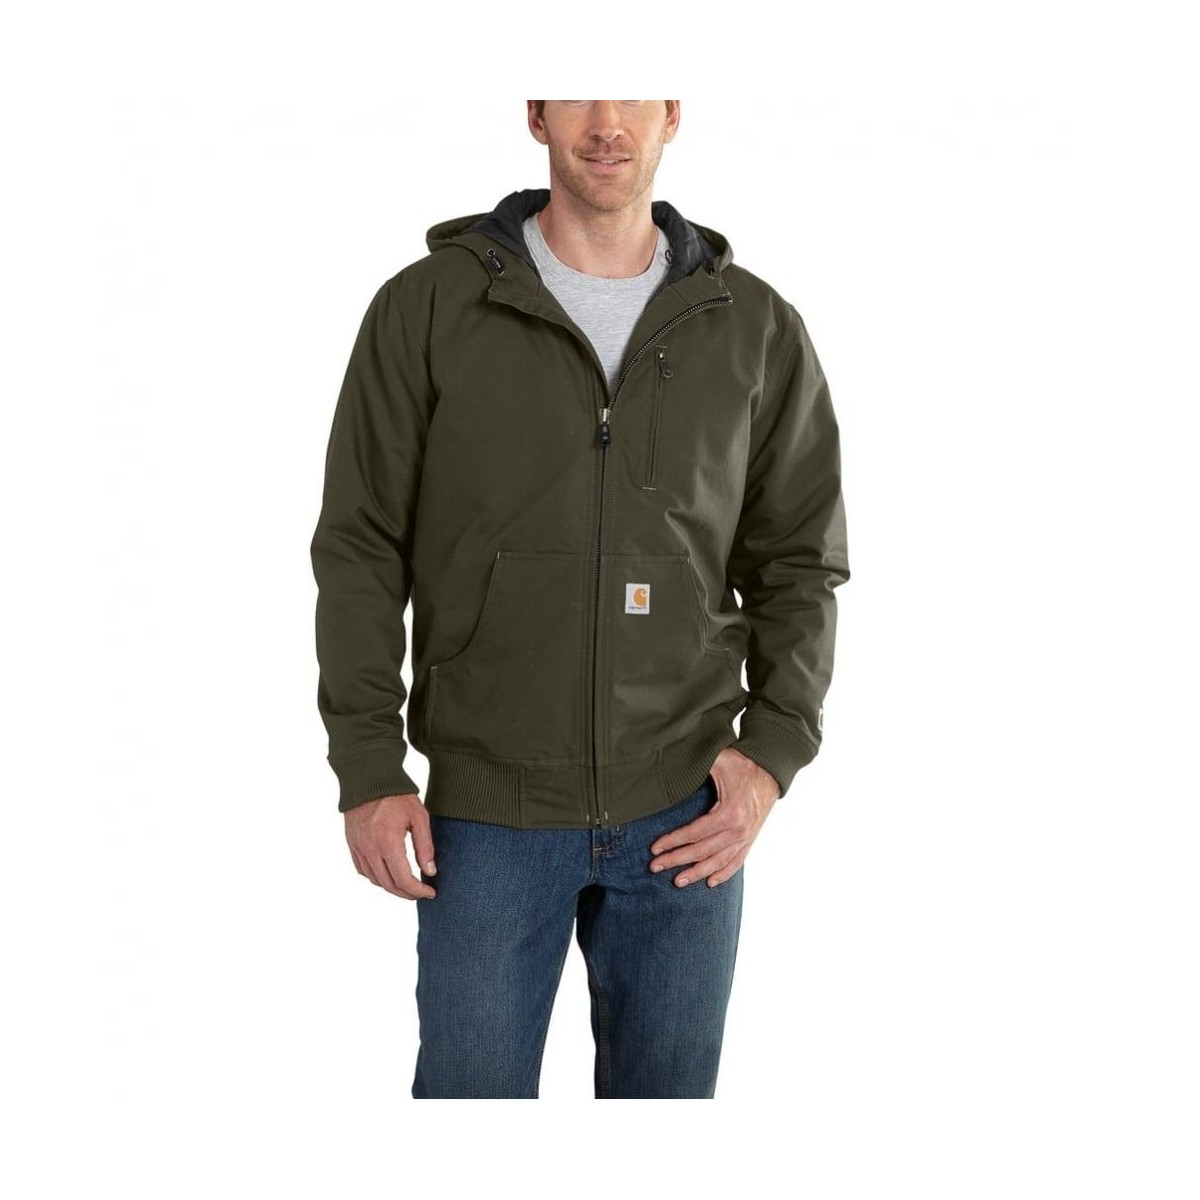 huge discount 1e1c6 76495 GIACCA JEFFERSON ACTIVE CARHARTT